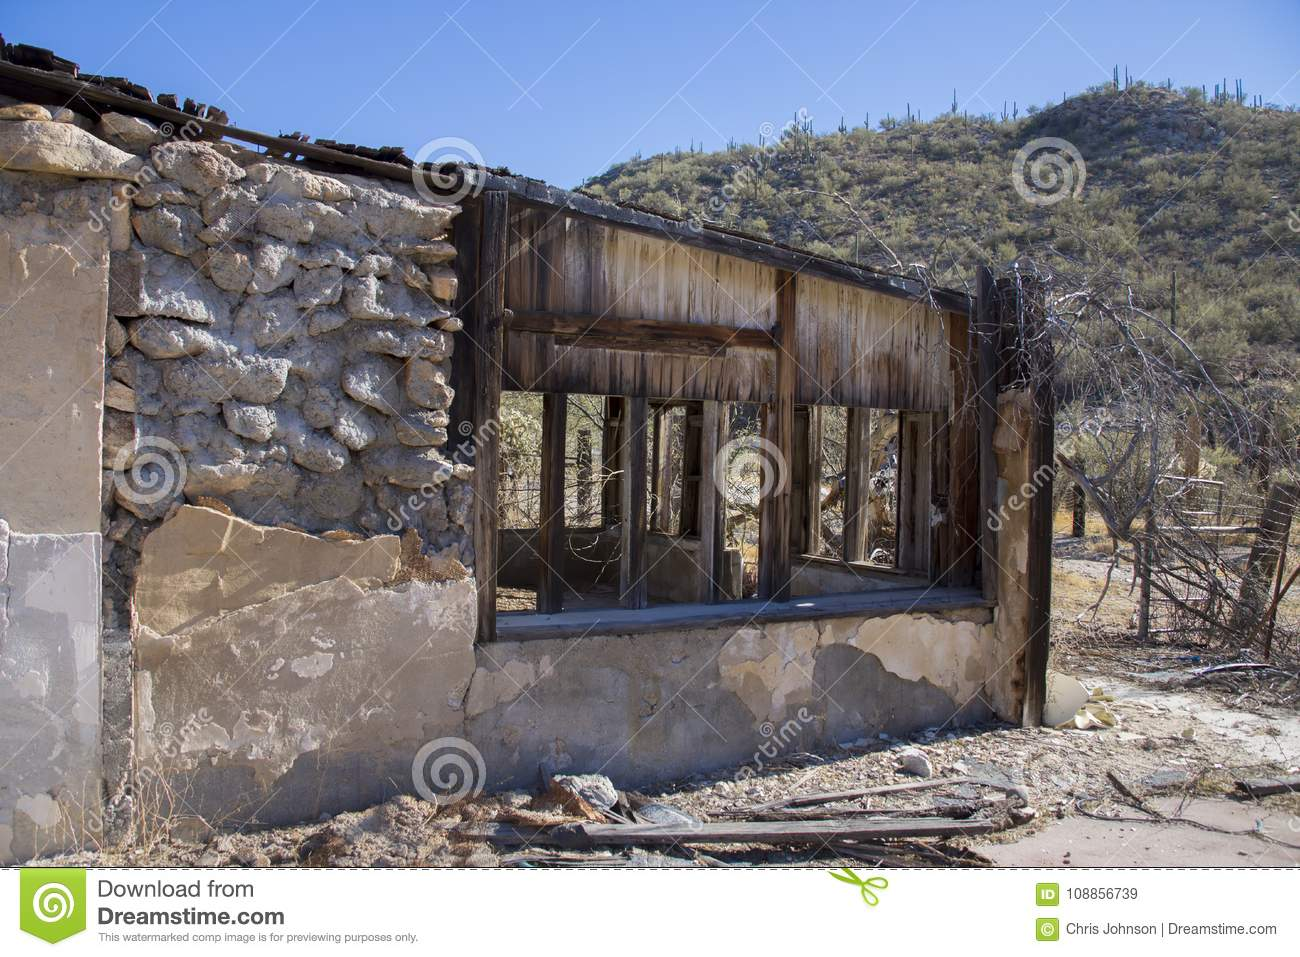 Old Abandoned Building In The Desert Rotting Away Stock Image.